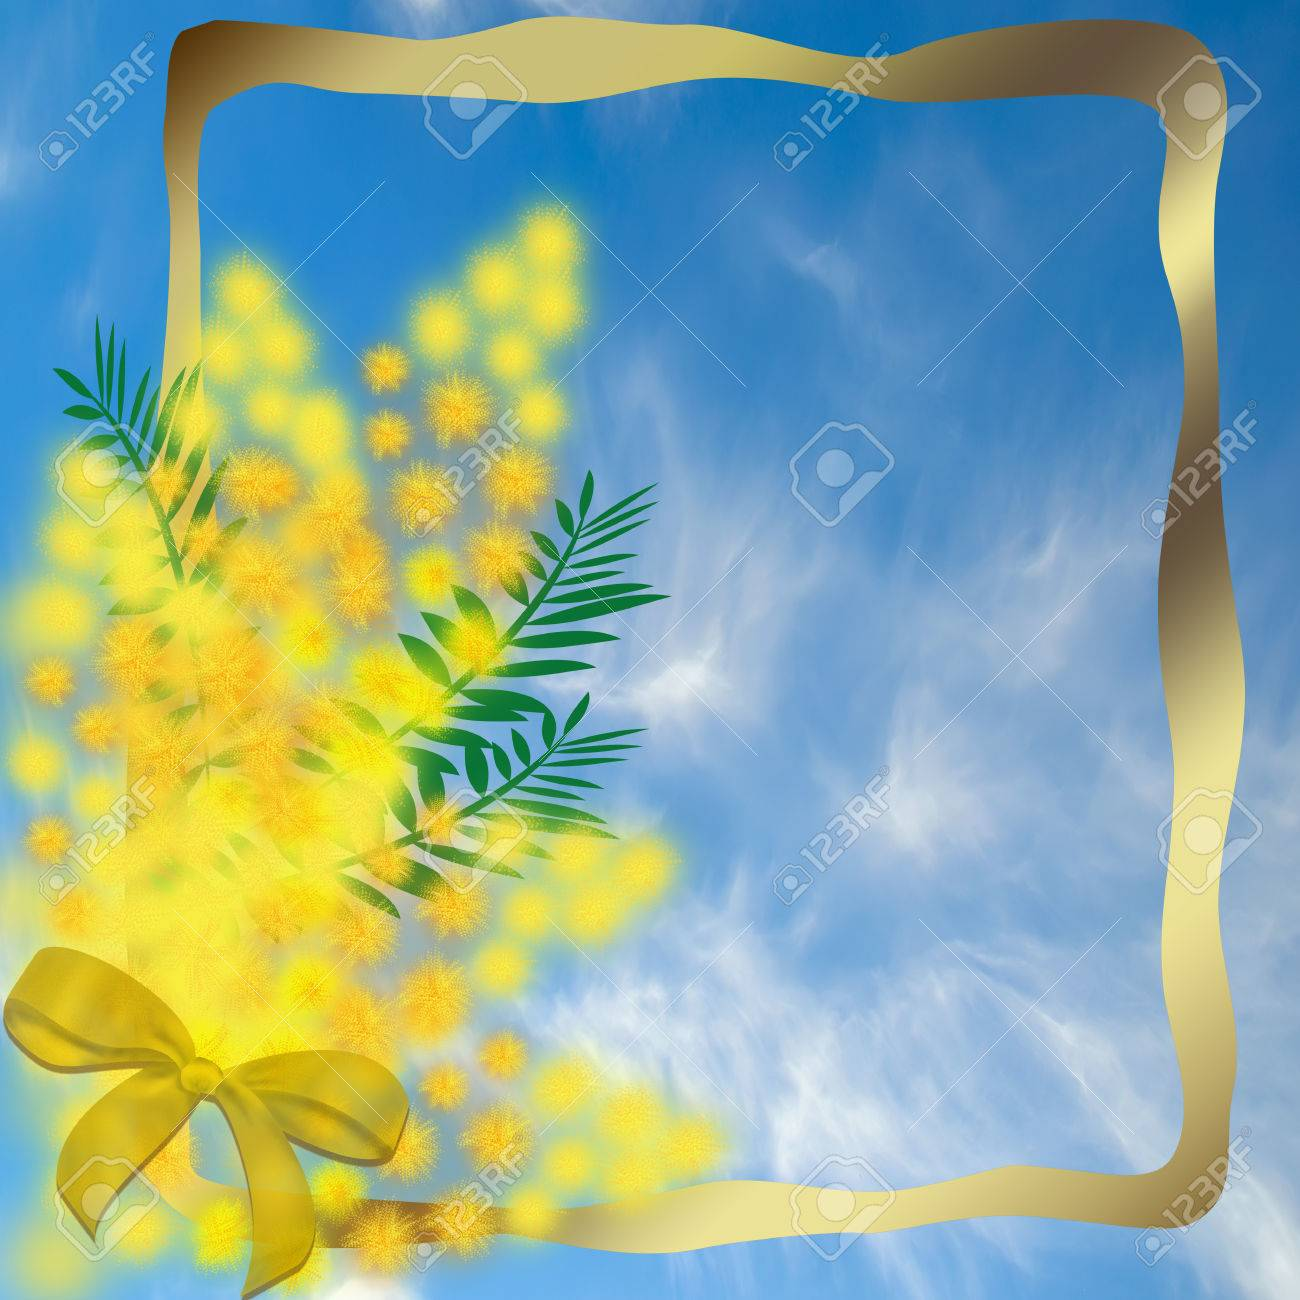 Golden Frame With A Bouquet Of Mimosa Flowers And Bow On A Blue Background  Of Spring